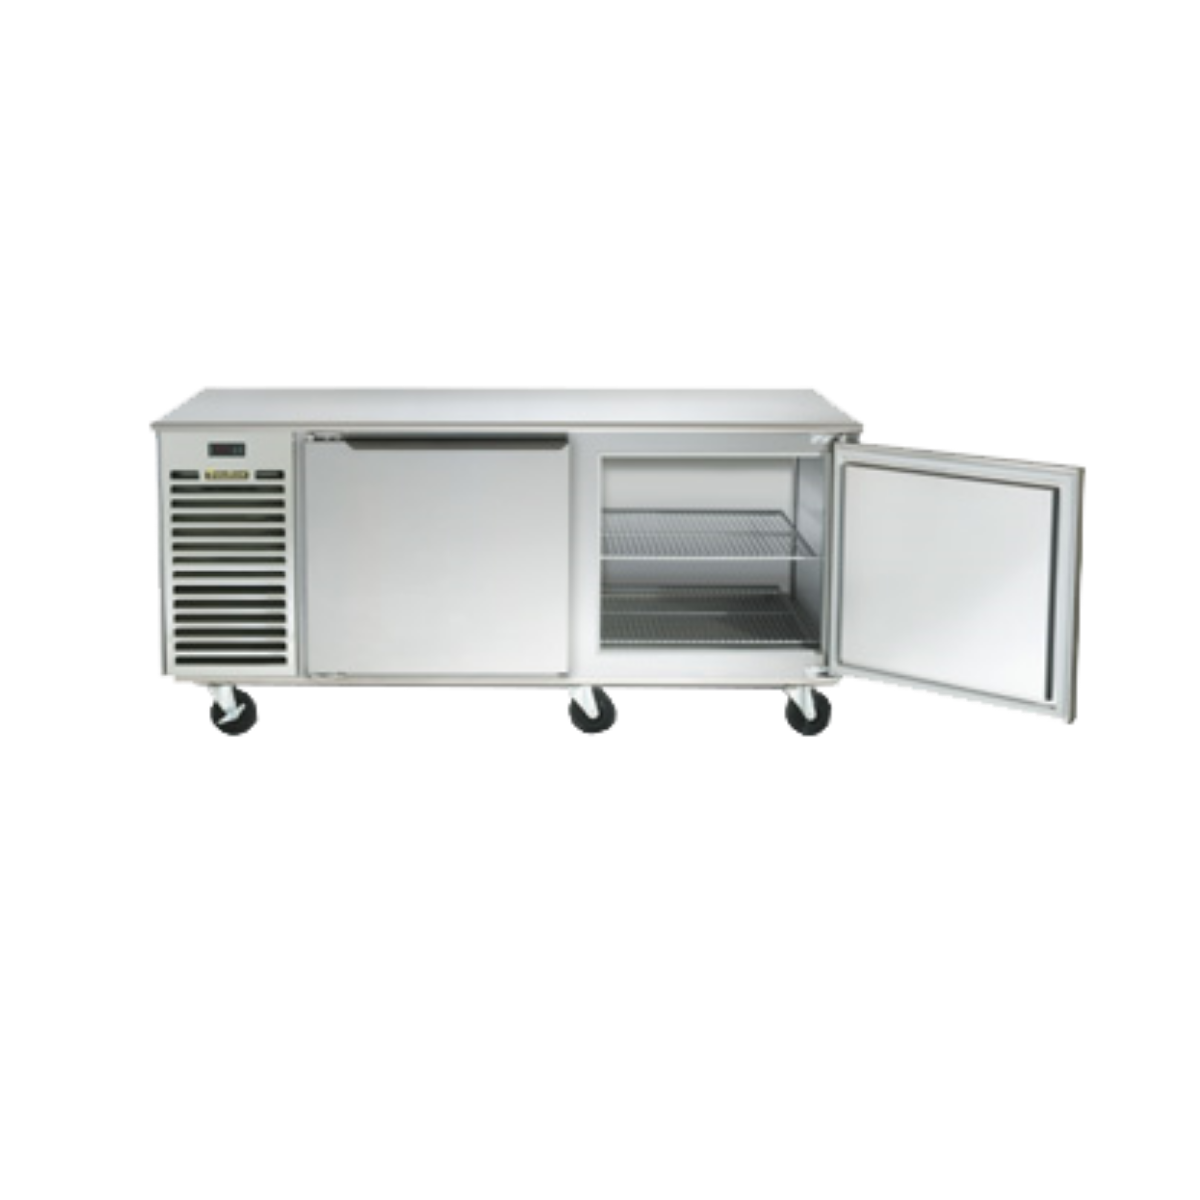 Traulsen TU044HT Undercounter Refrigerator, 3 Section